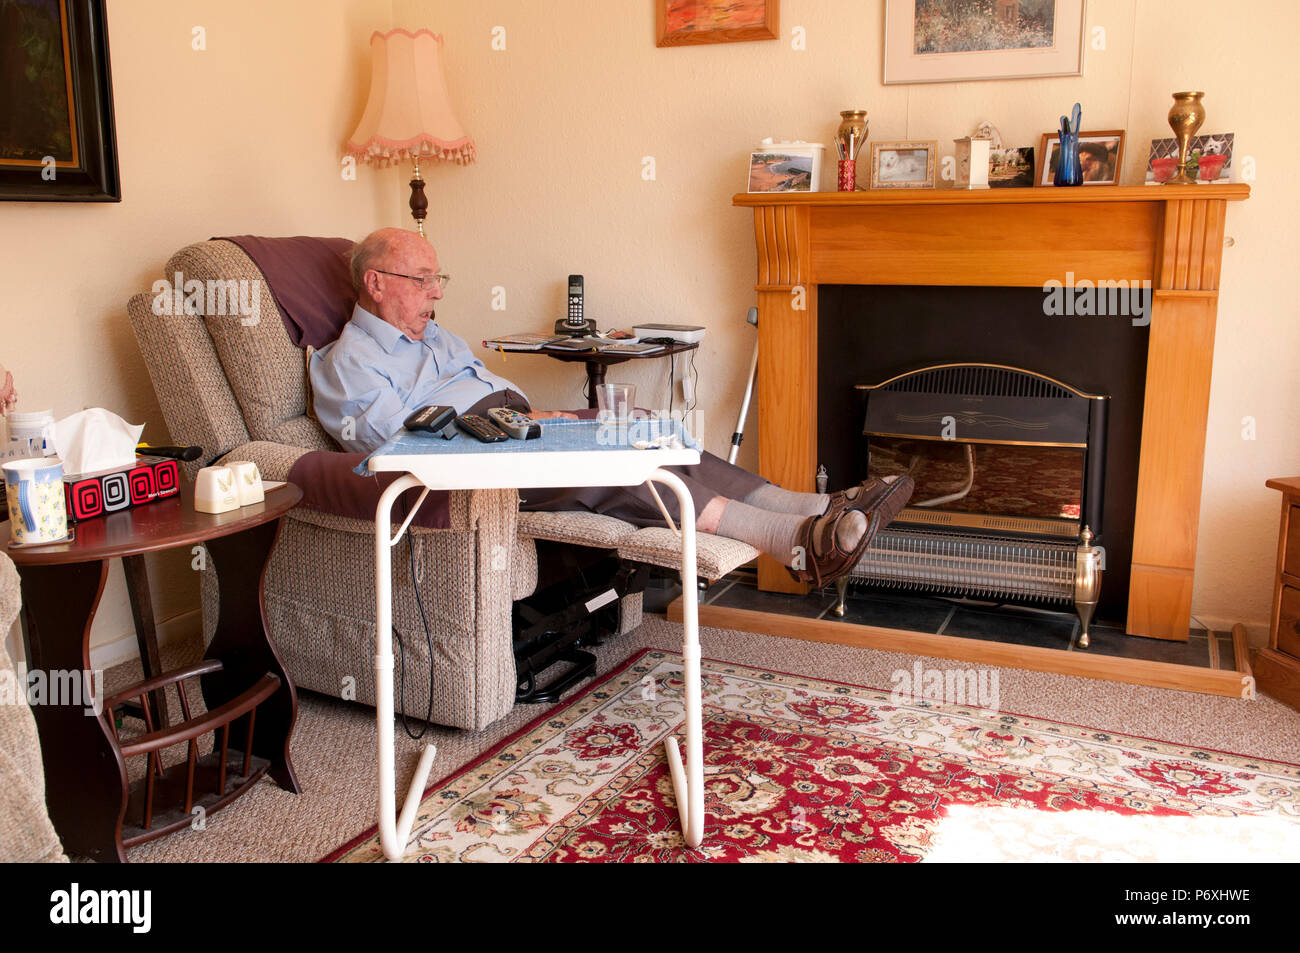 Elderly man snoozing in rise and recline chair - Stock Image